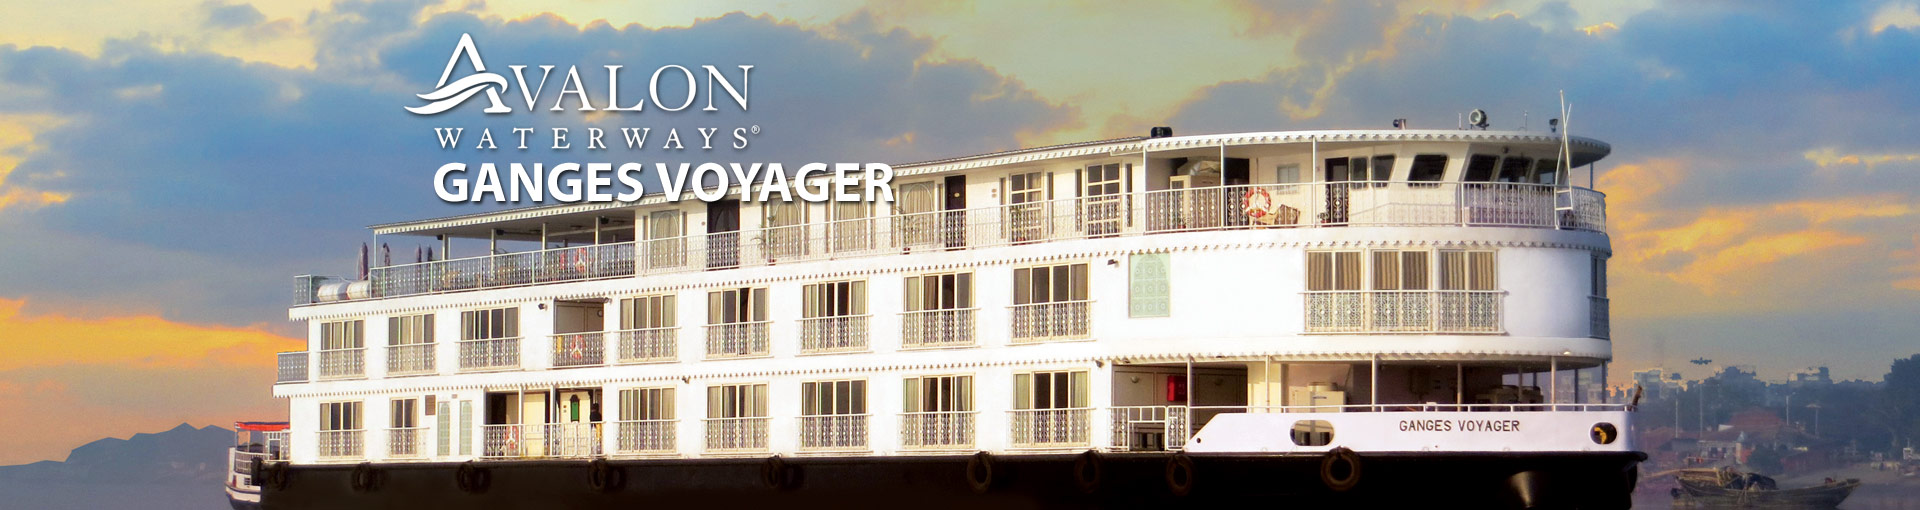 Avalon Waterways Ganges Voyager River Ship